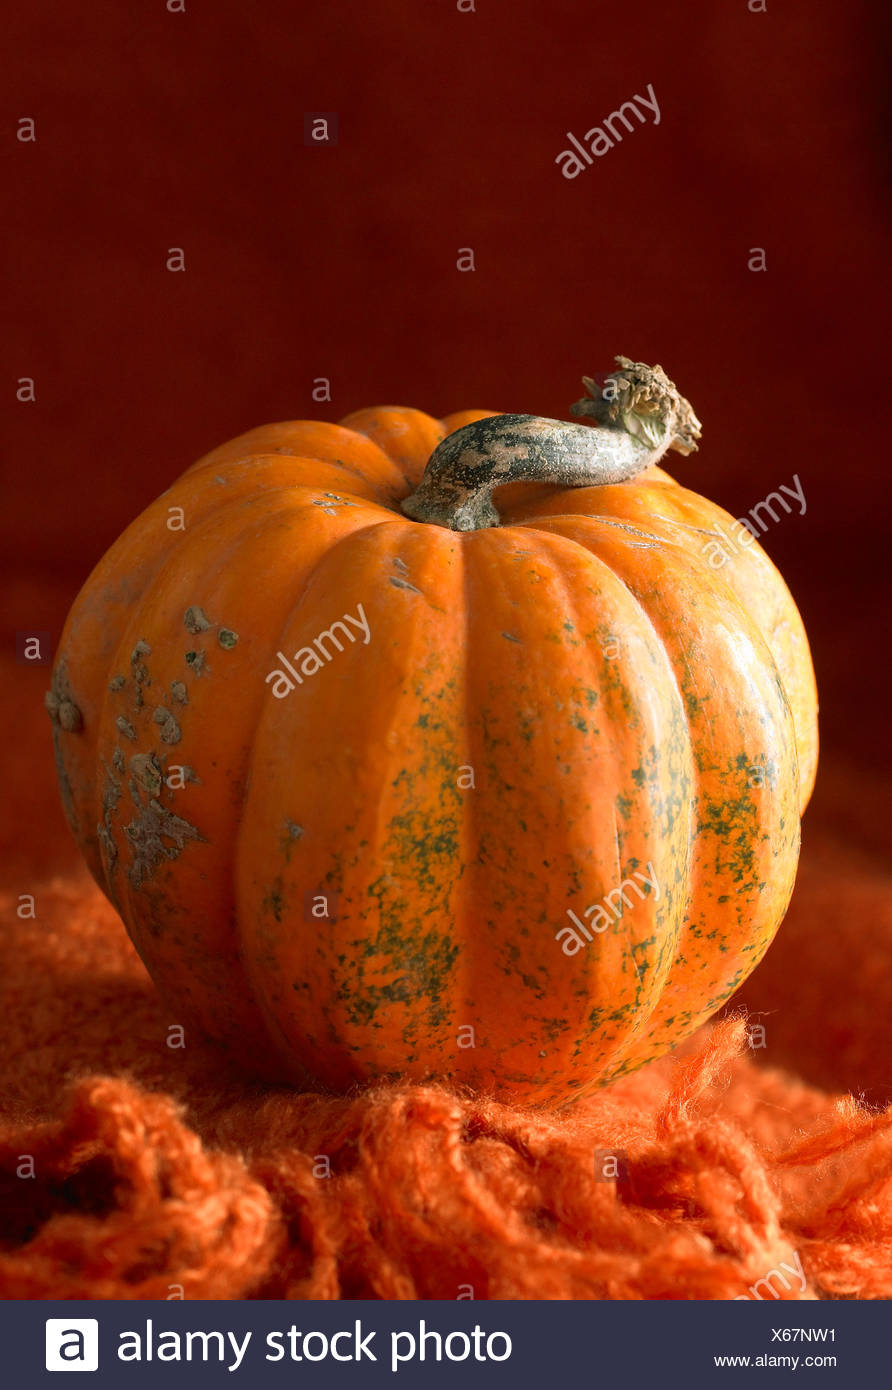 Whole pumpkin - Stock Image